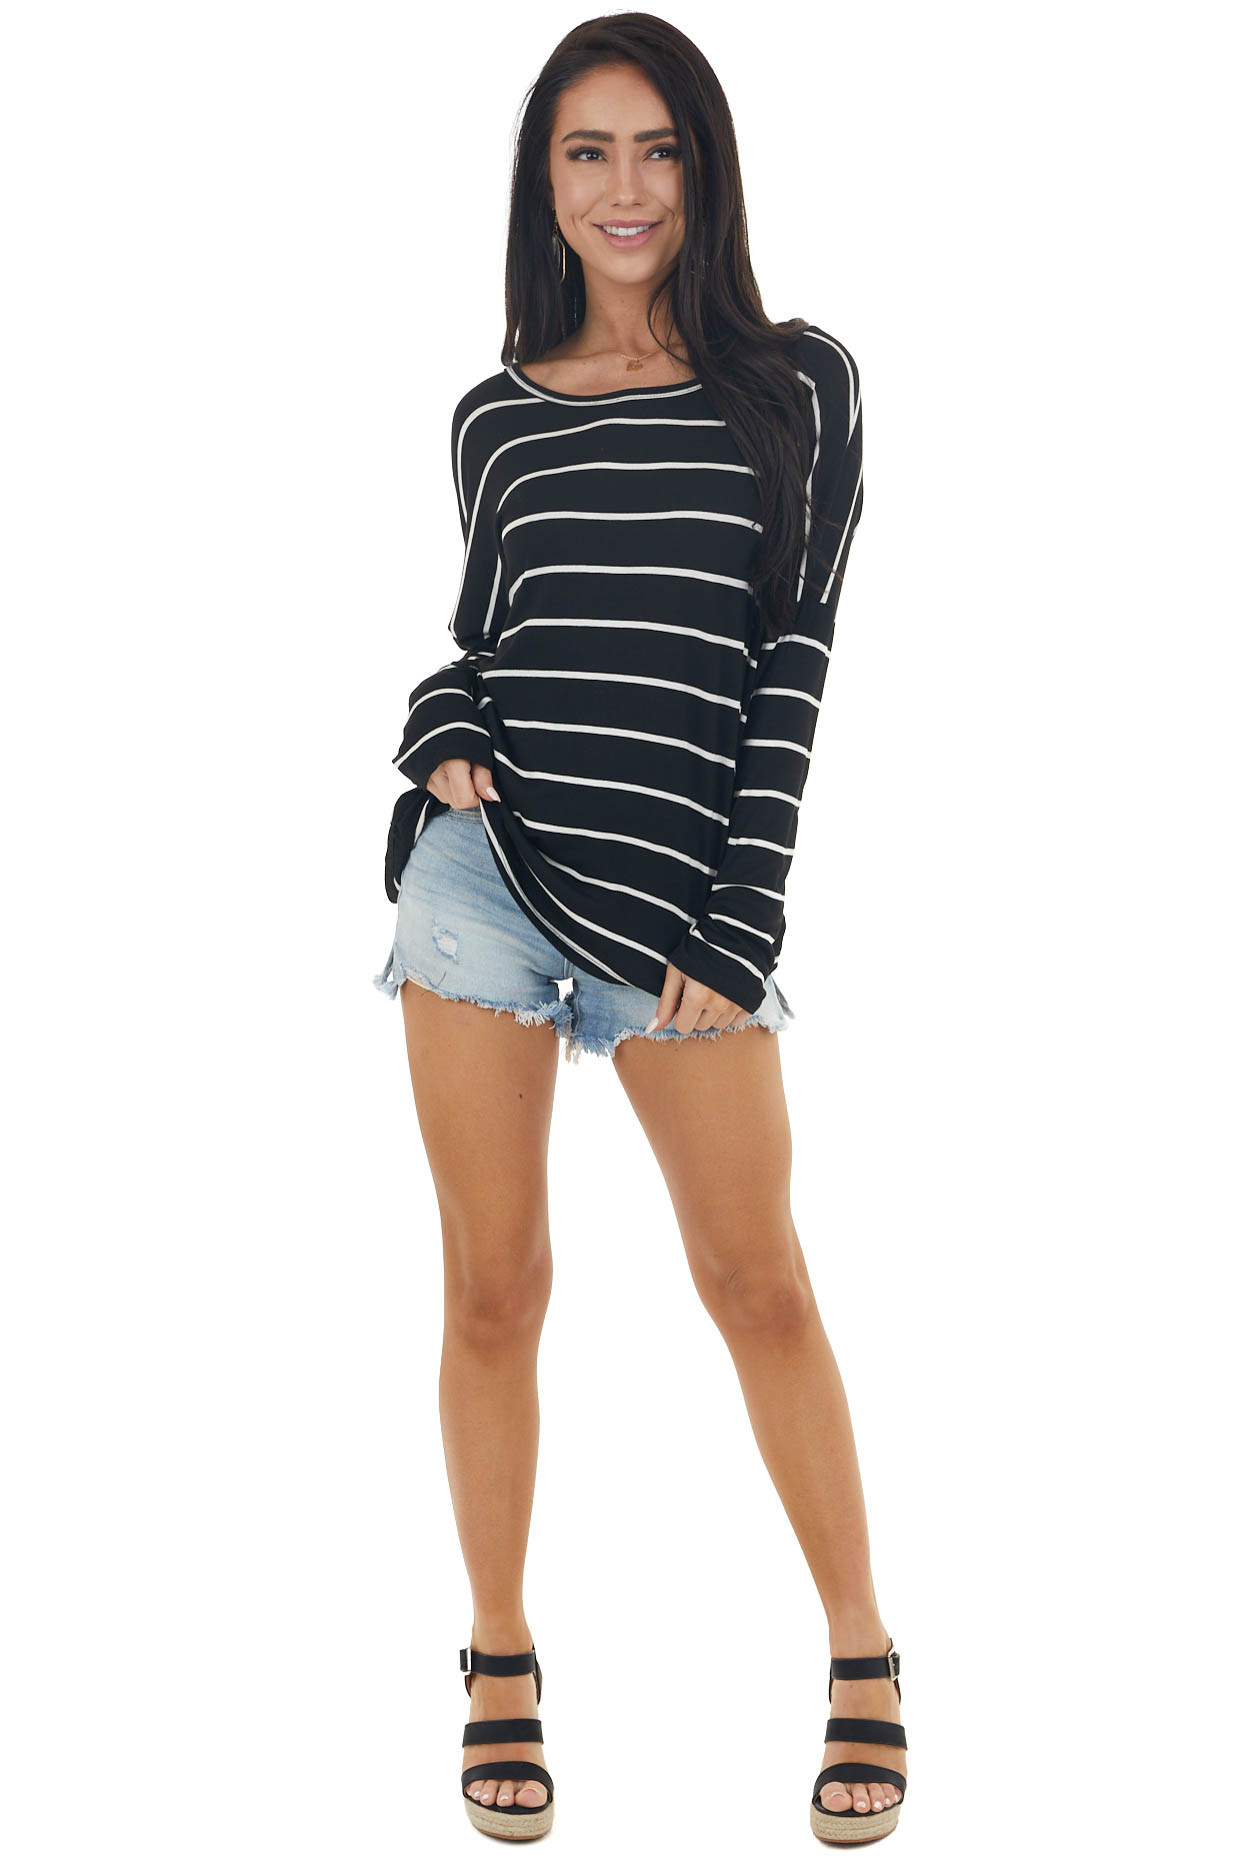 Black Striped Long Sleeve Knit Top with Back Lace Detail